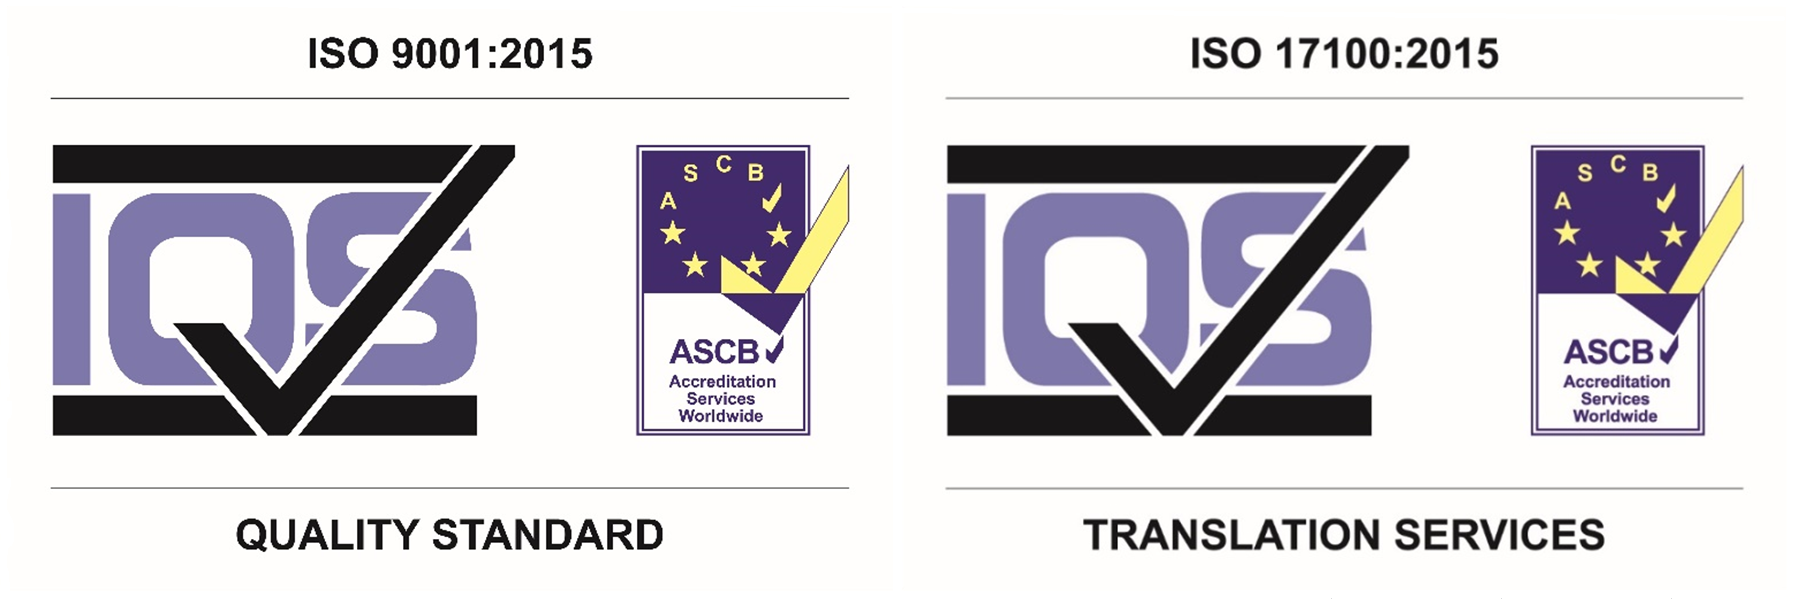 ISO9001:2015 and 17100:2015